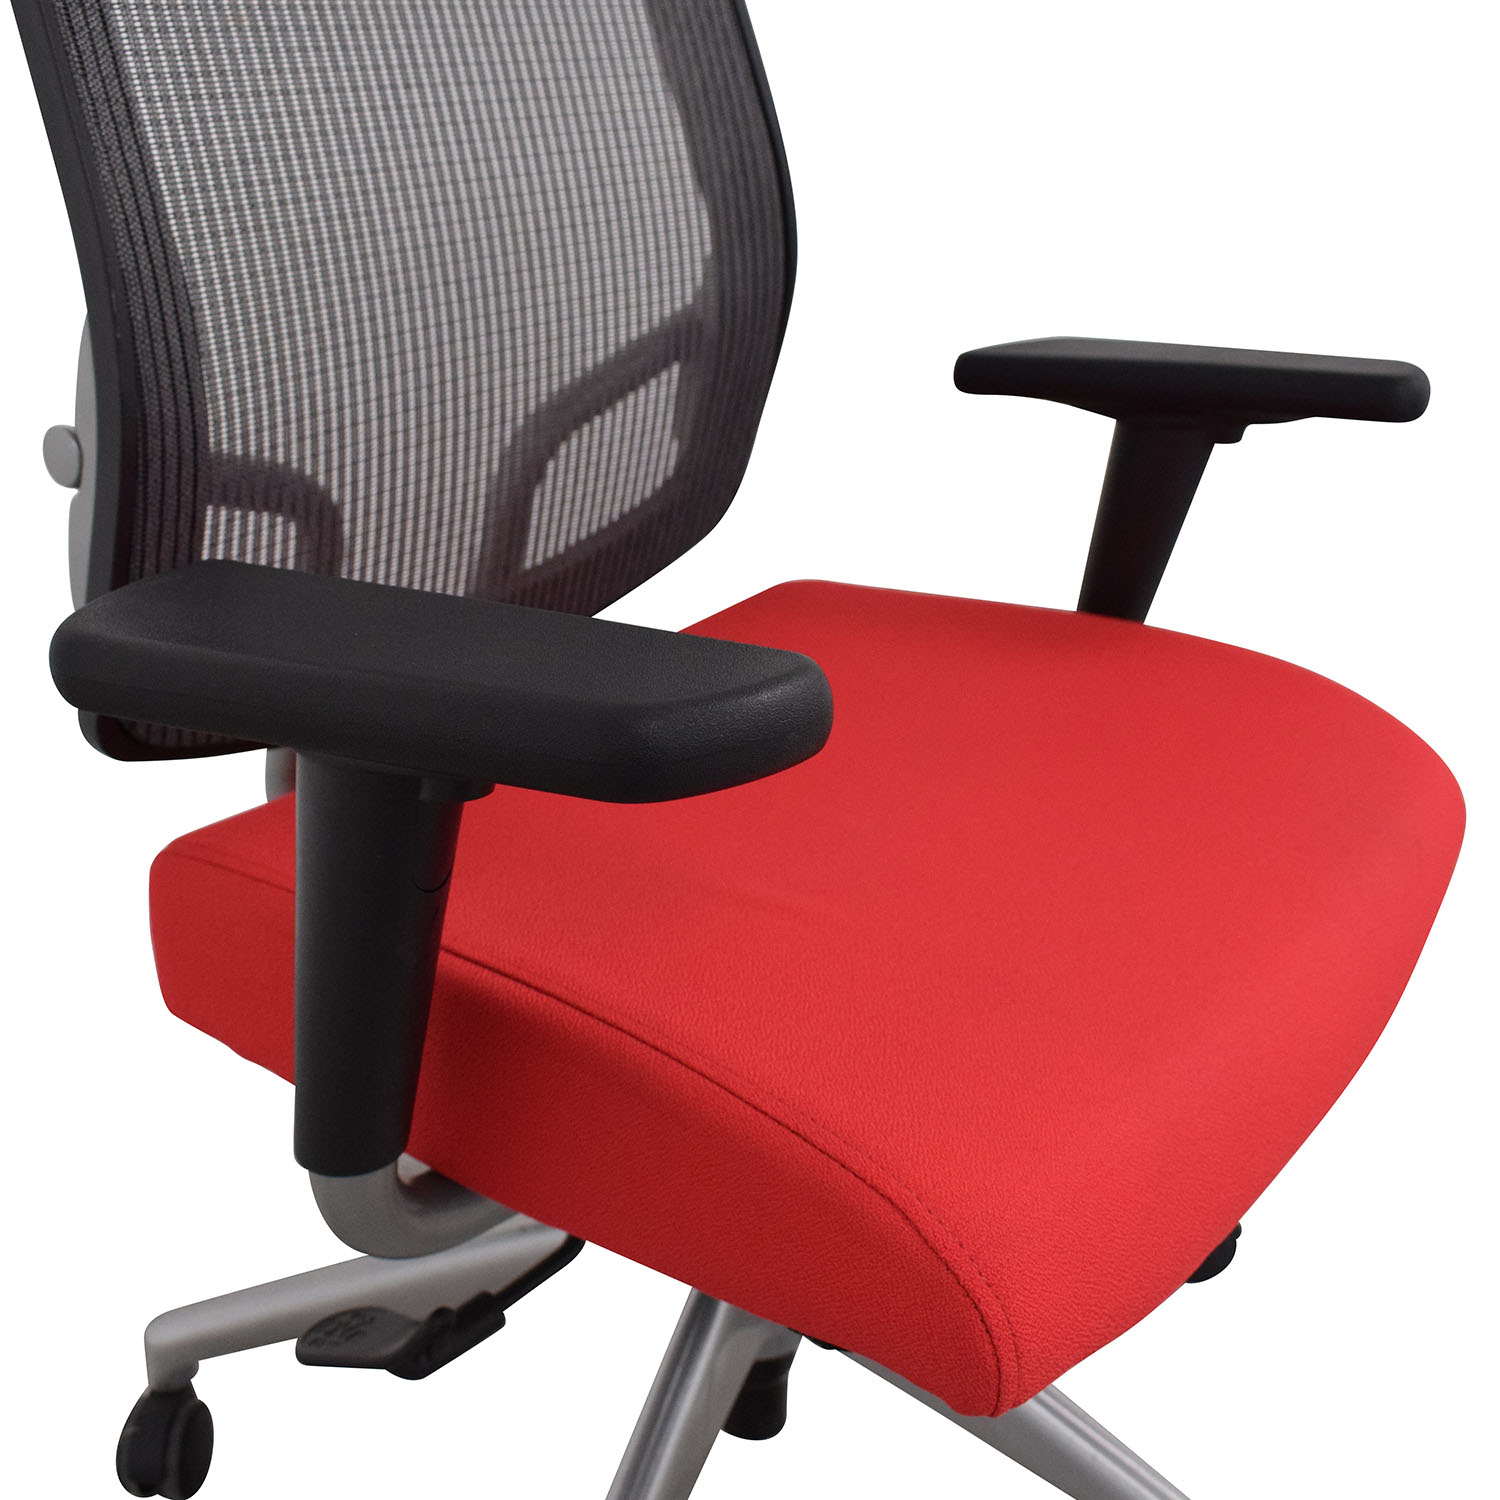 SitOnIt Focus High Back Office Chair sale